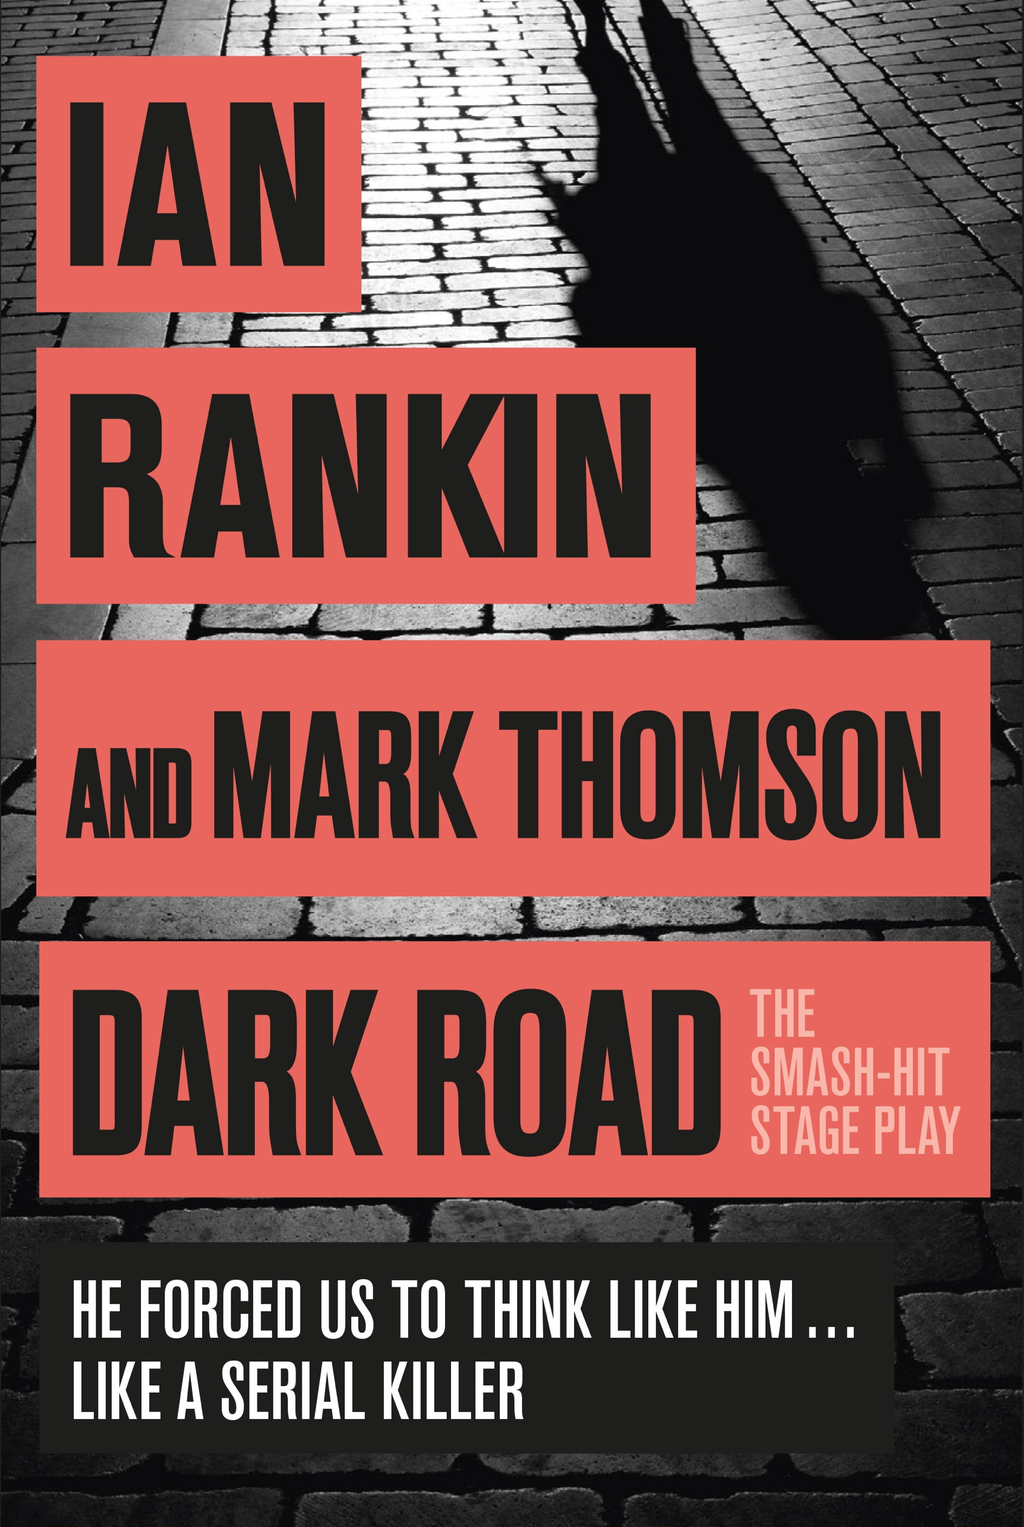 Dark Road A play